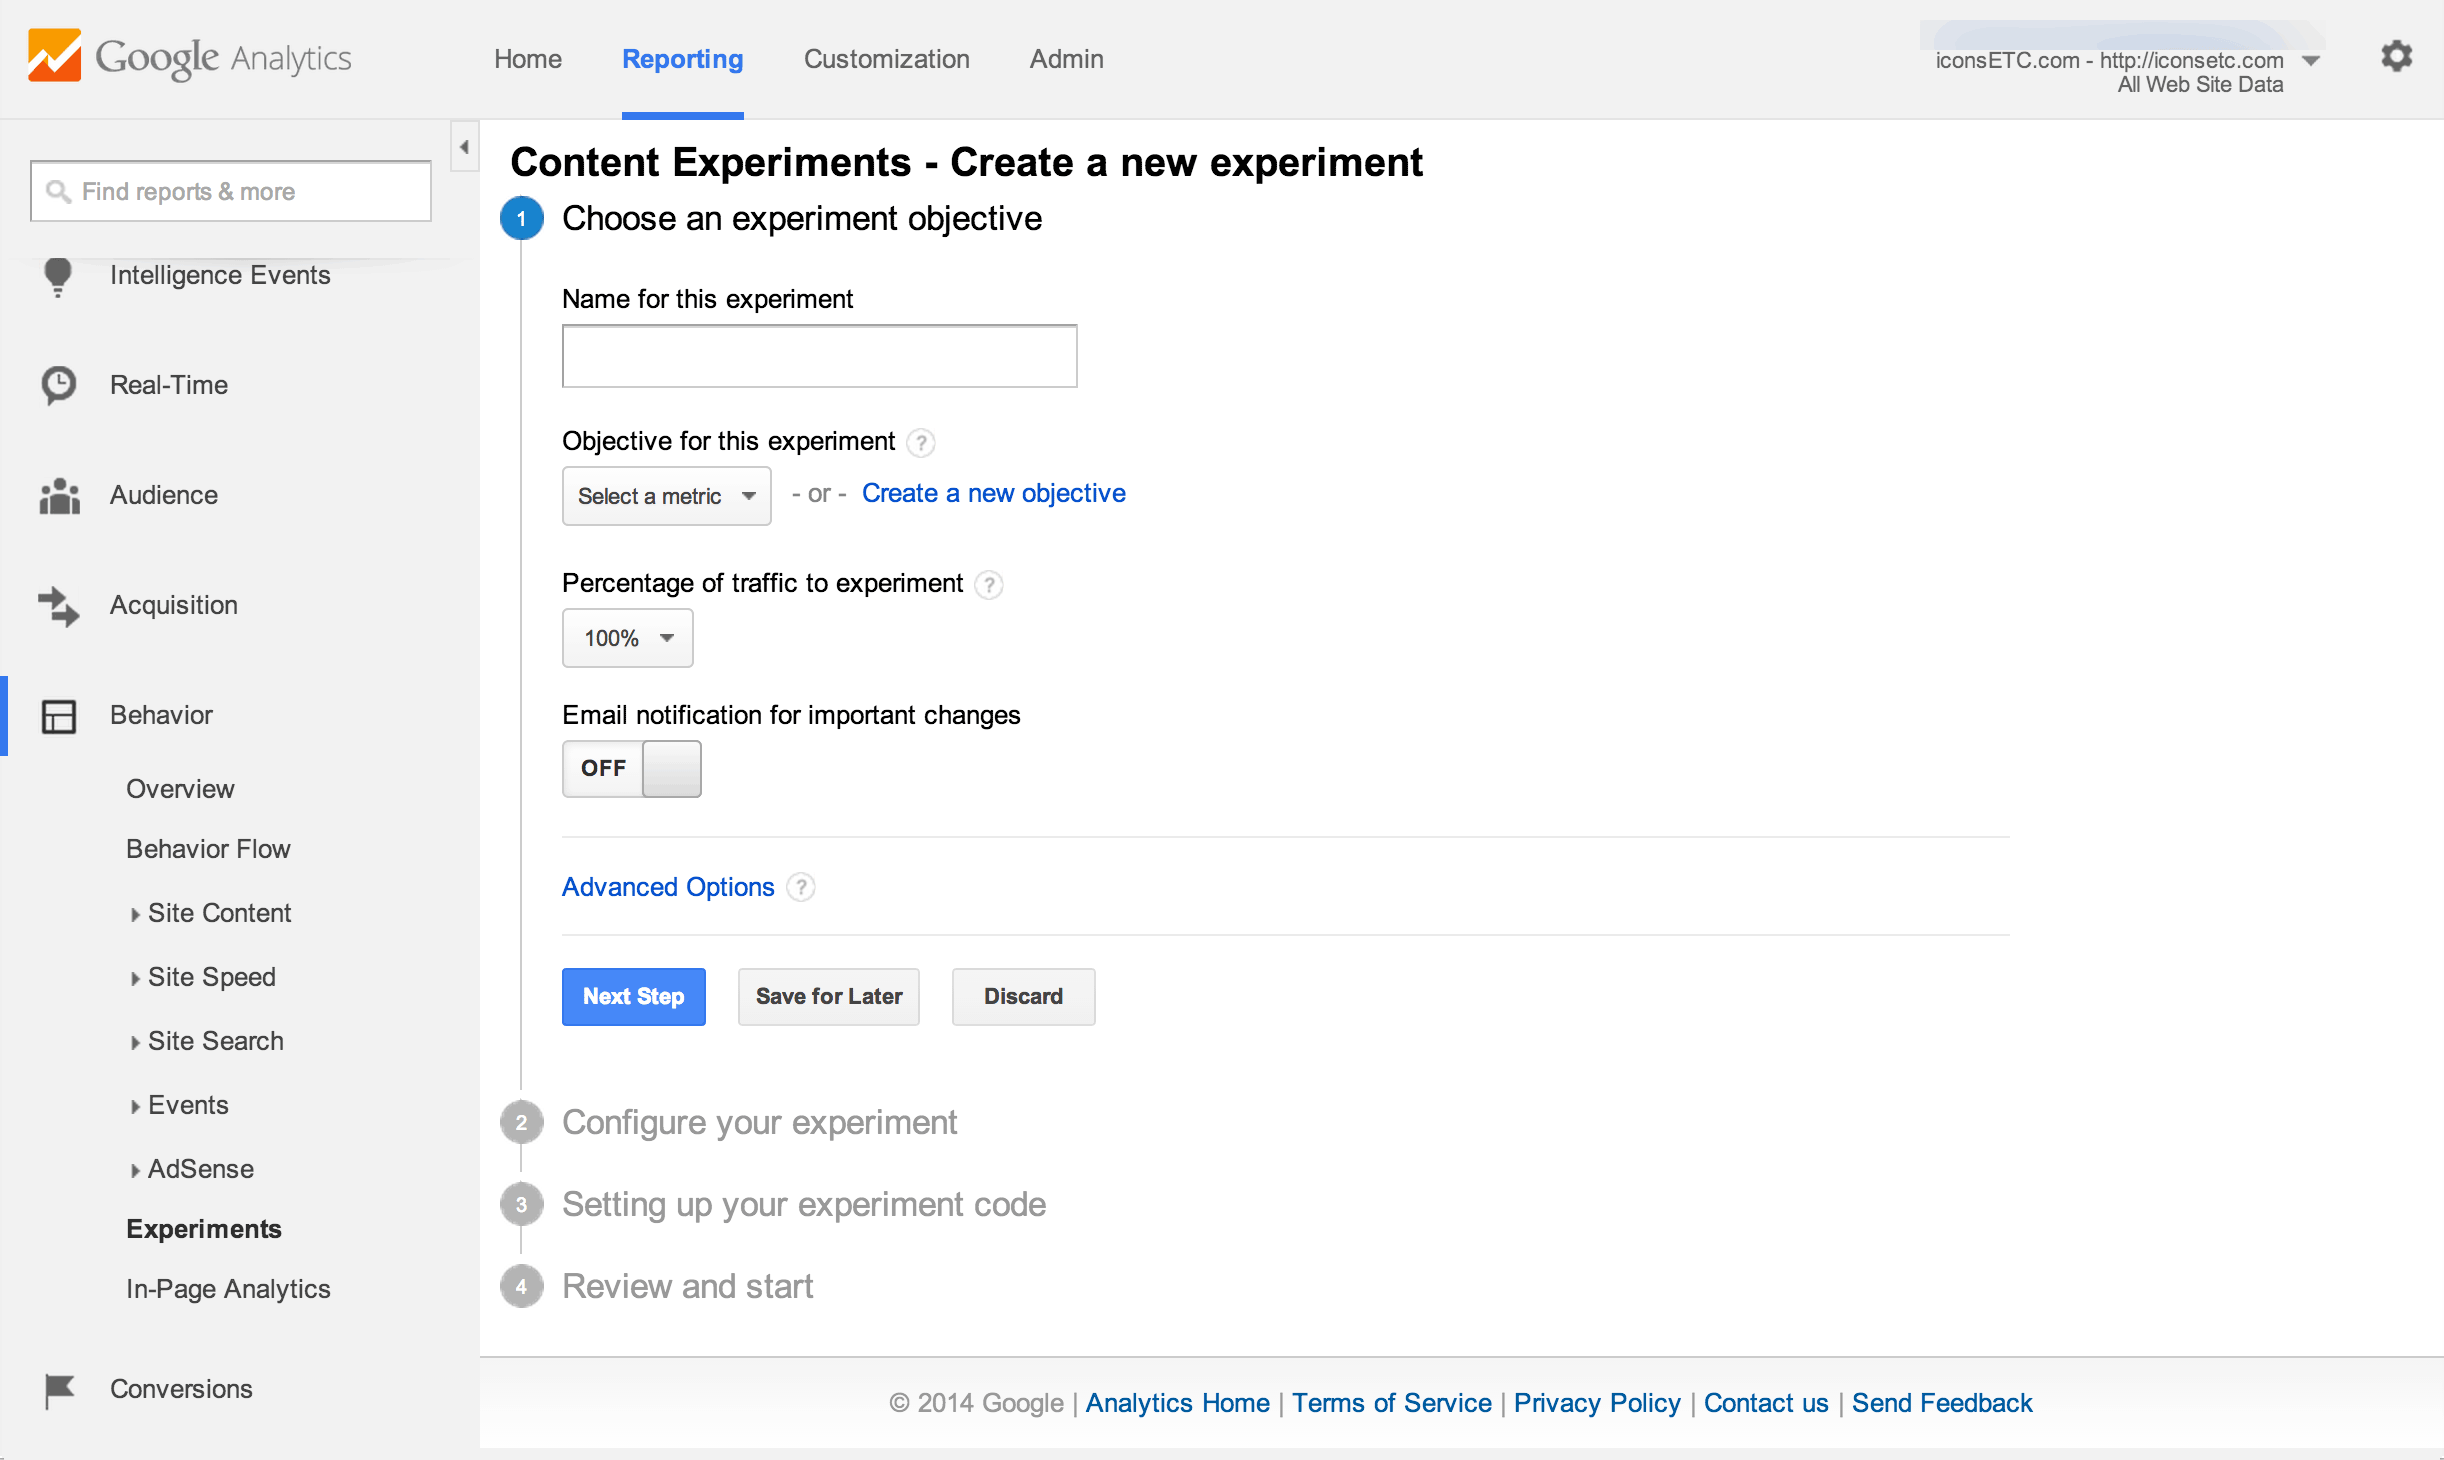 Content Experiments in Google Analytics